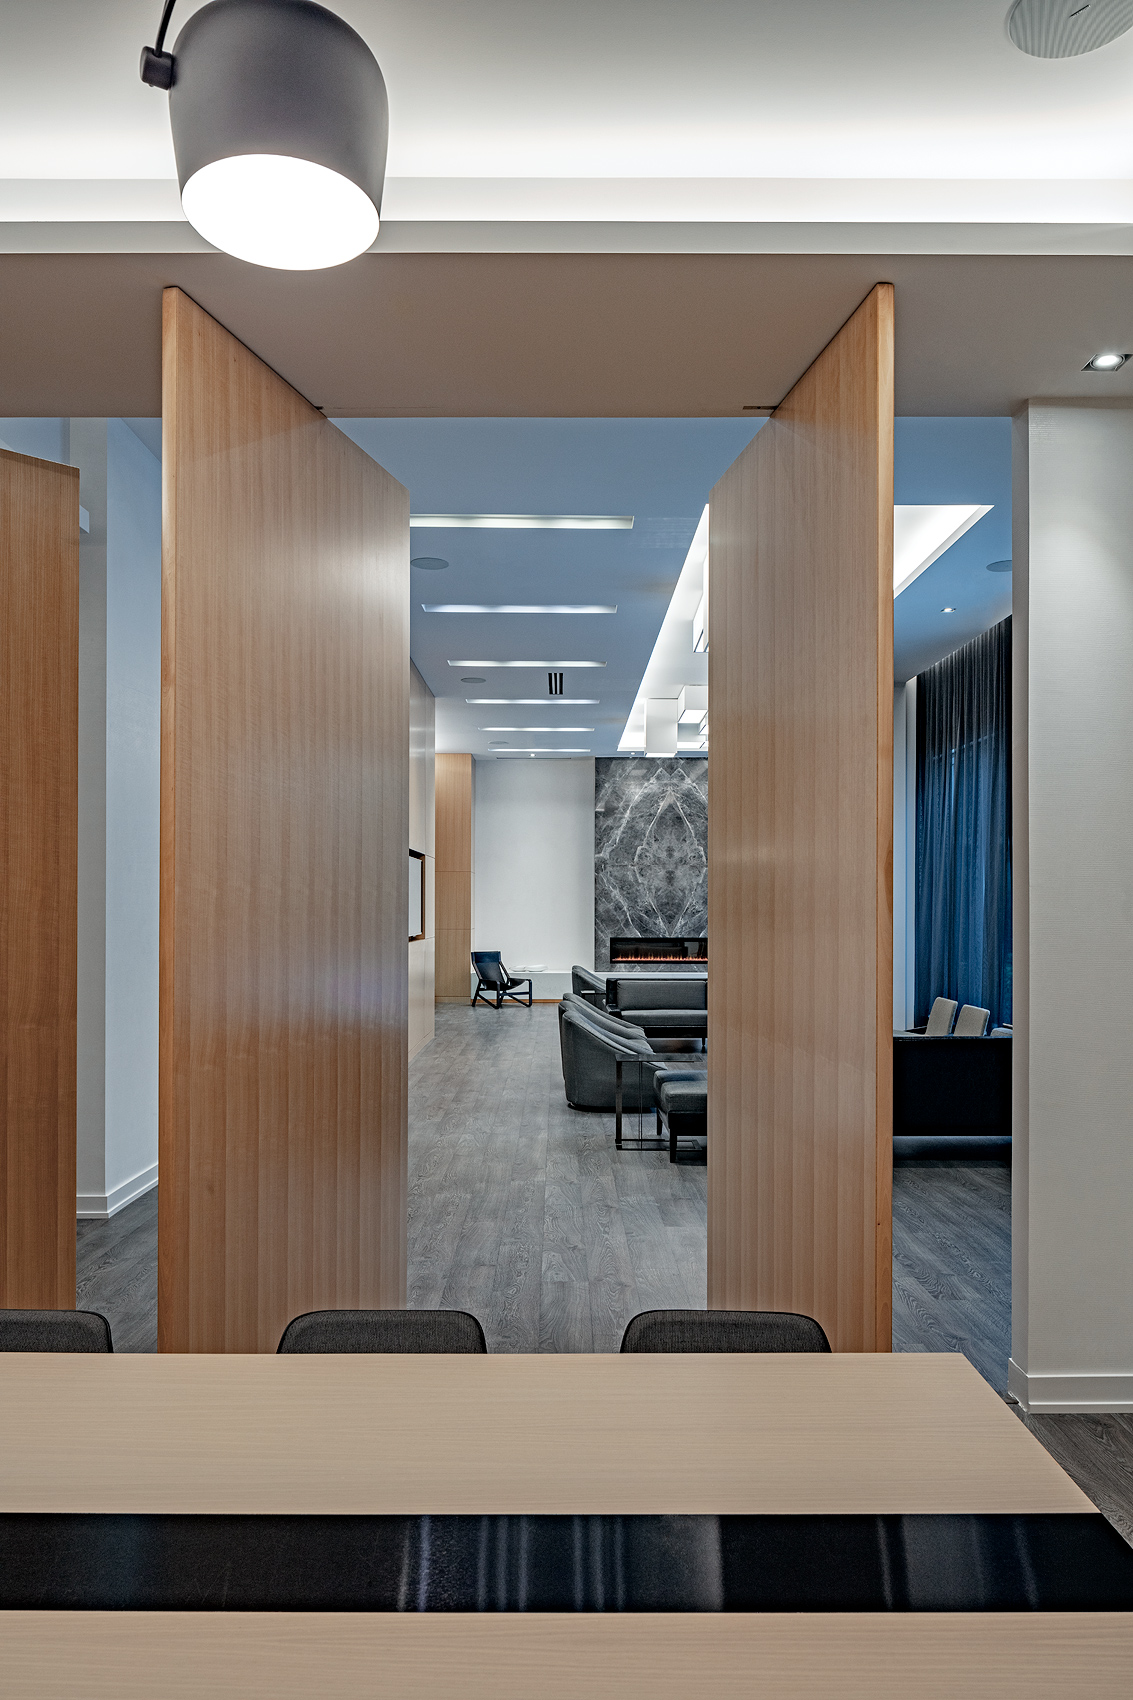 Light and wooden panels, Peter A. Sellar Architectural Photographer